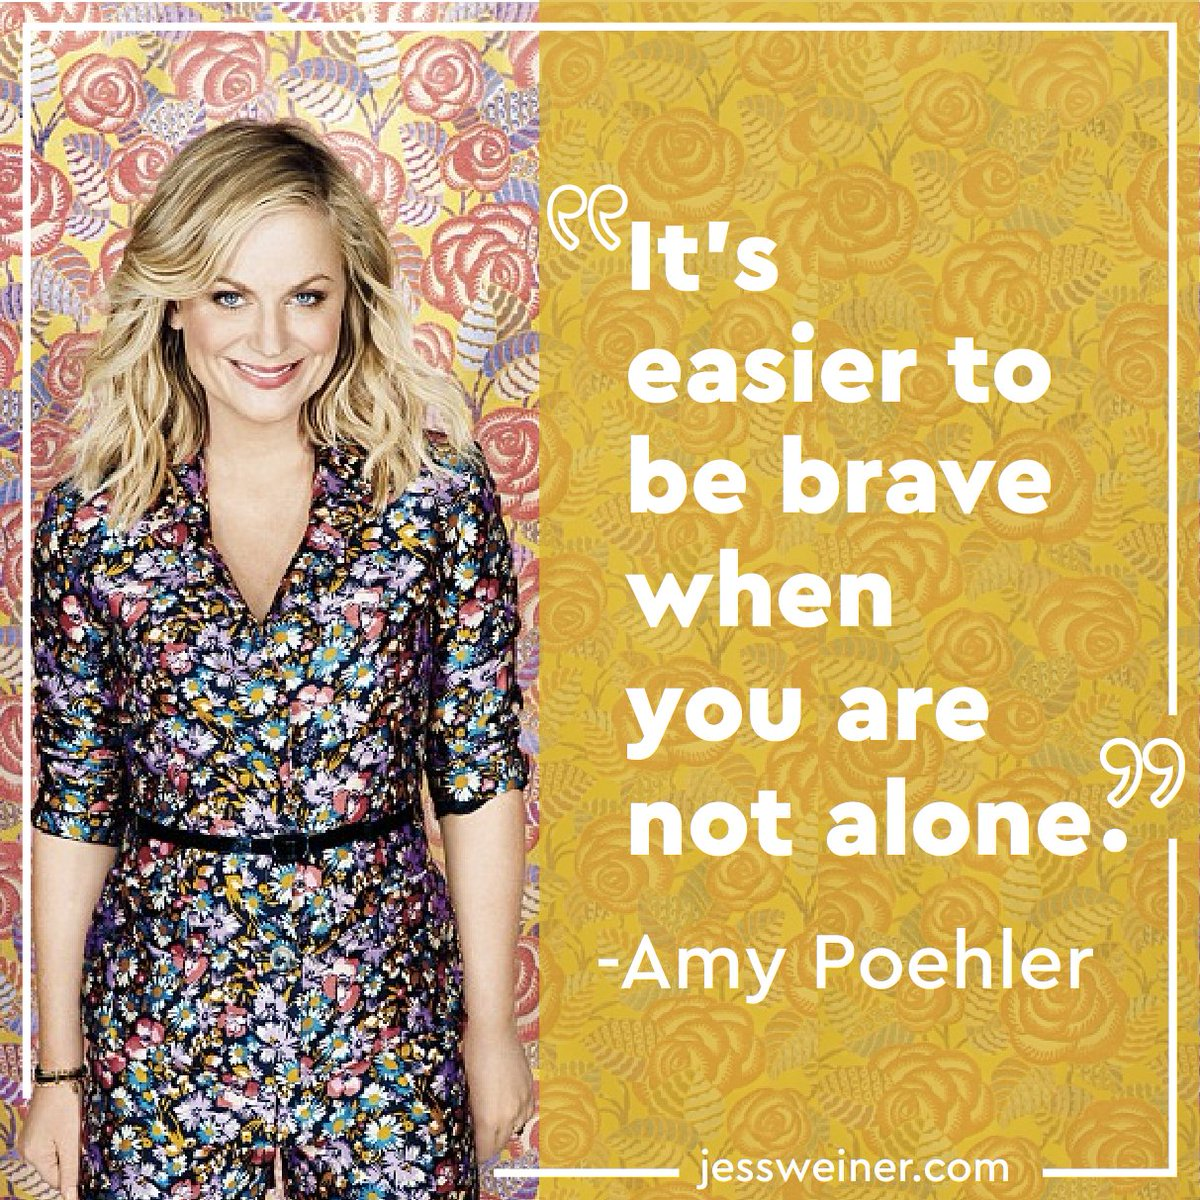 Happy Birthday #AmyPoehler we are so grateful for you and @smrtgrls ! https://t.co/kjv3VHVeCX